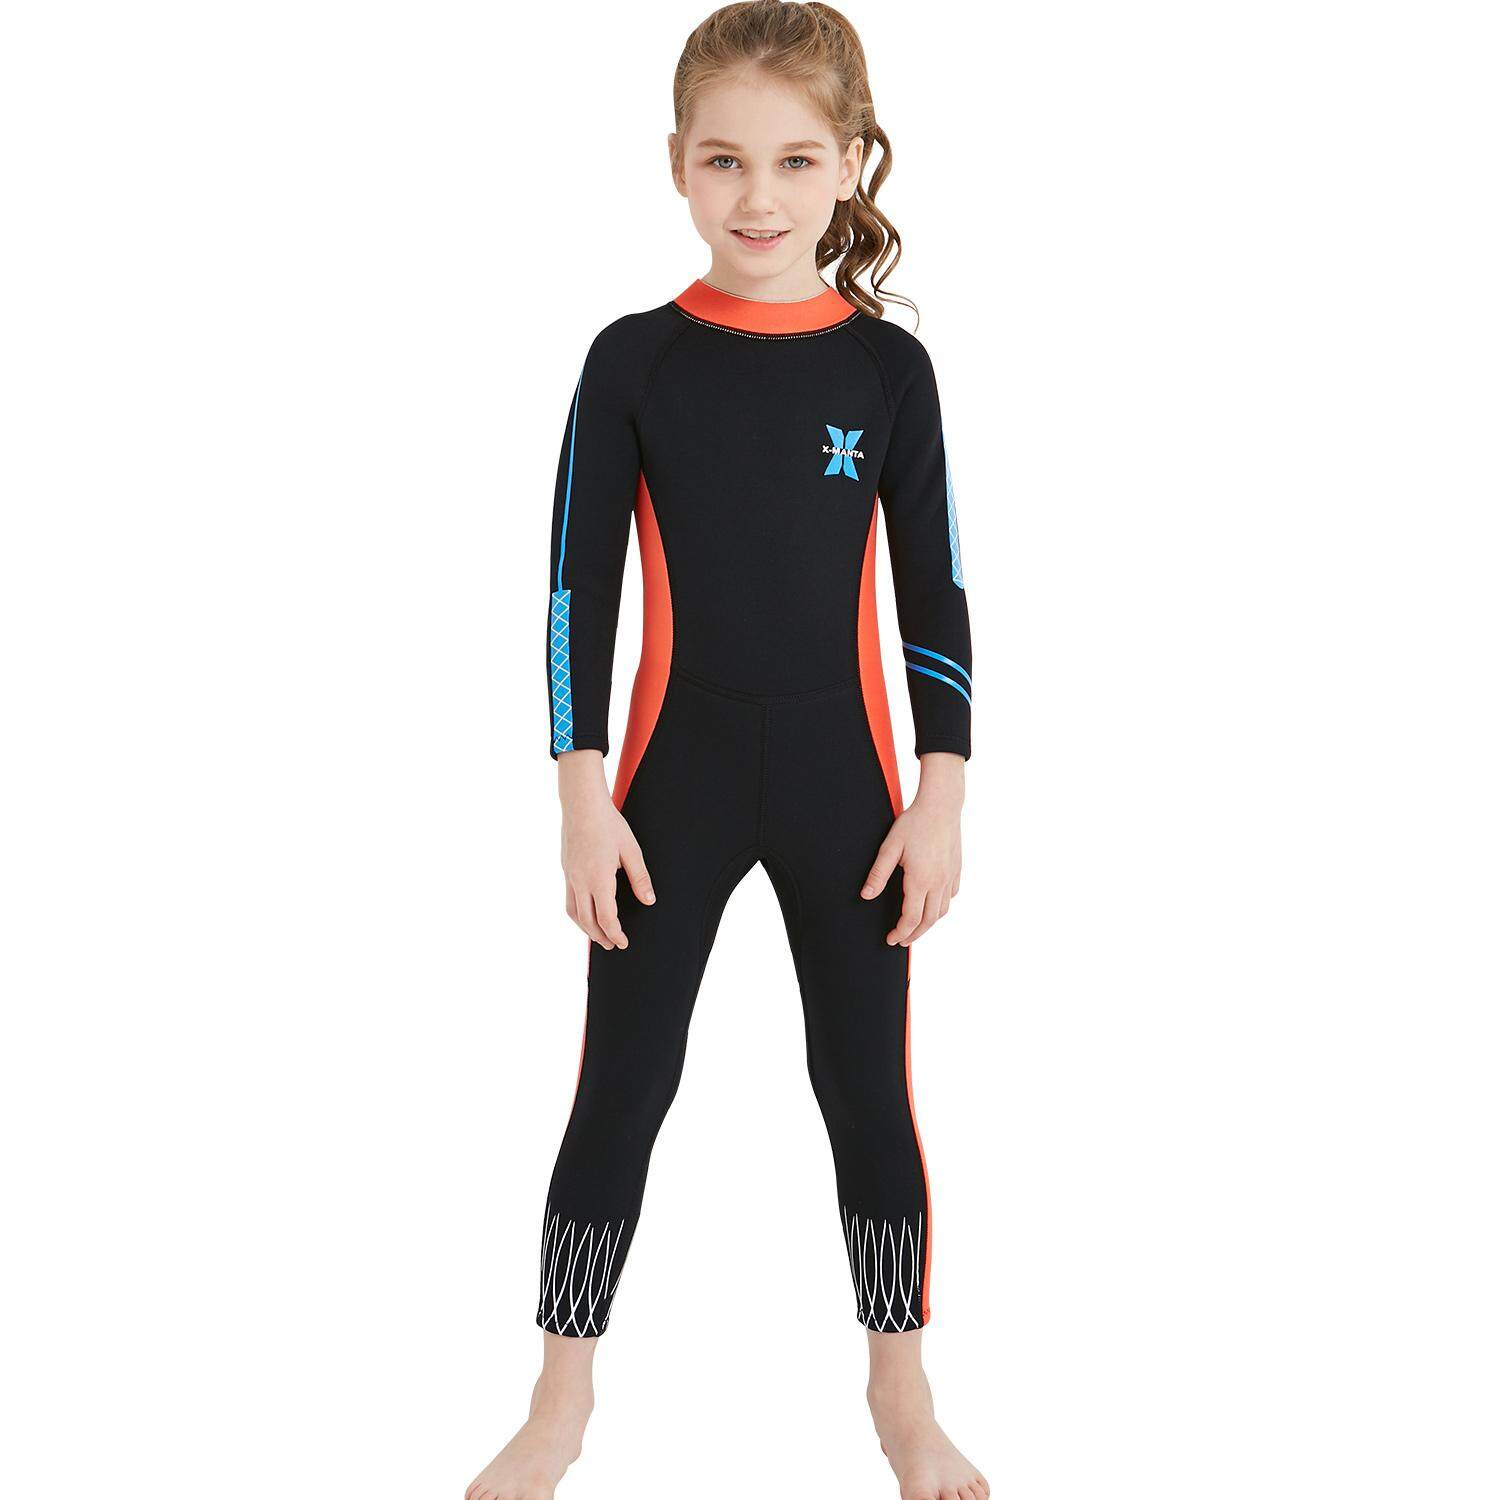 645429c0a3 2.5MM Neoprene Wetsuits Children Full Body Diving Suits Surf Swimwear For  Girls(Blue)